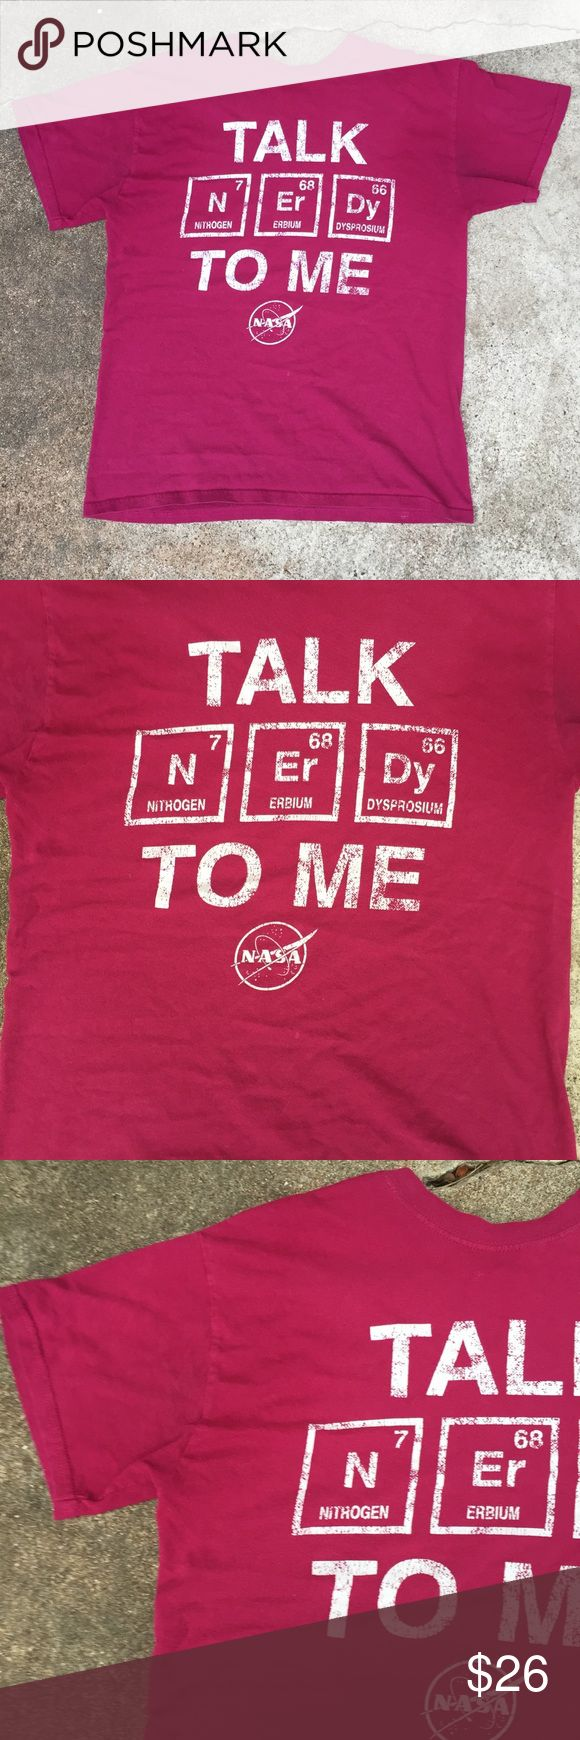 NASA Talk Nerdy To Me Elements Shirt Jason De Rulo NASA Talk Nerdy To Me Tee t shirt size Medium in a maroon magenta purple red color! Bought at the gift shop at the houston NASA museum on a tour there! Great fit for a small as well! One lighter mark under the graphic shown best in third pic! Tops Tees - Short Sleeve